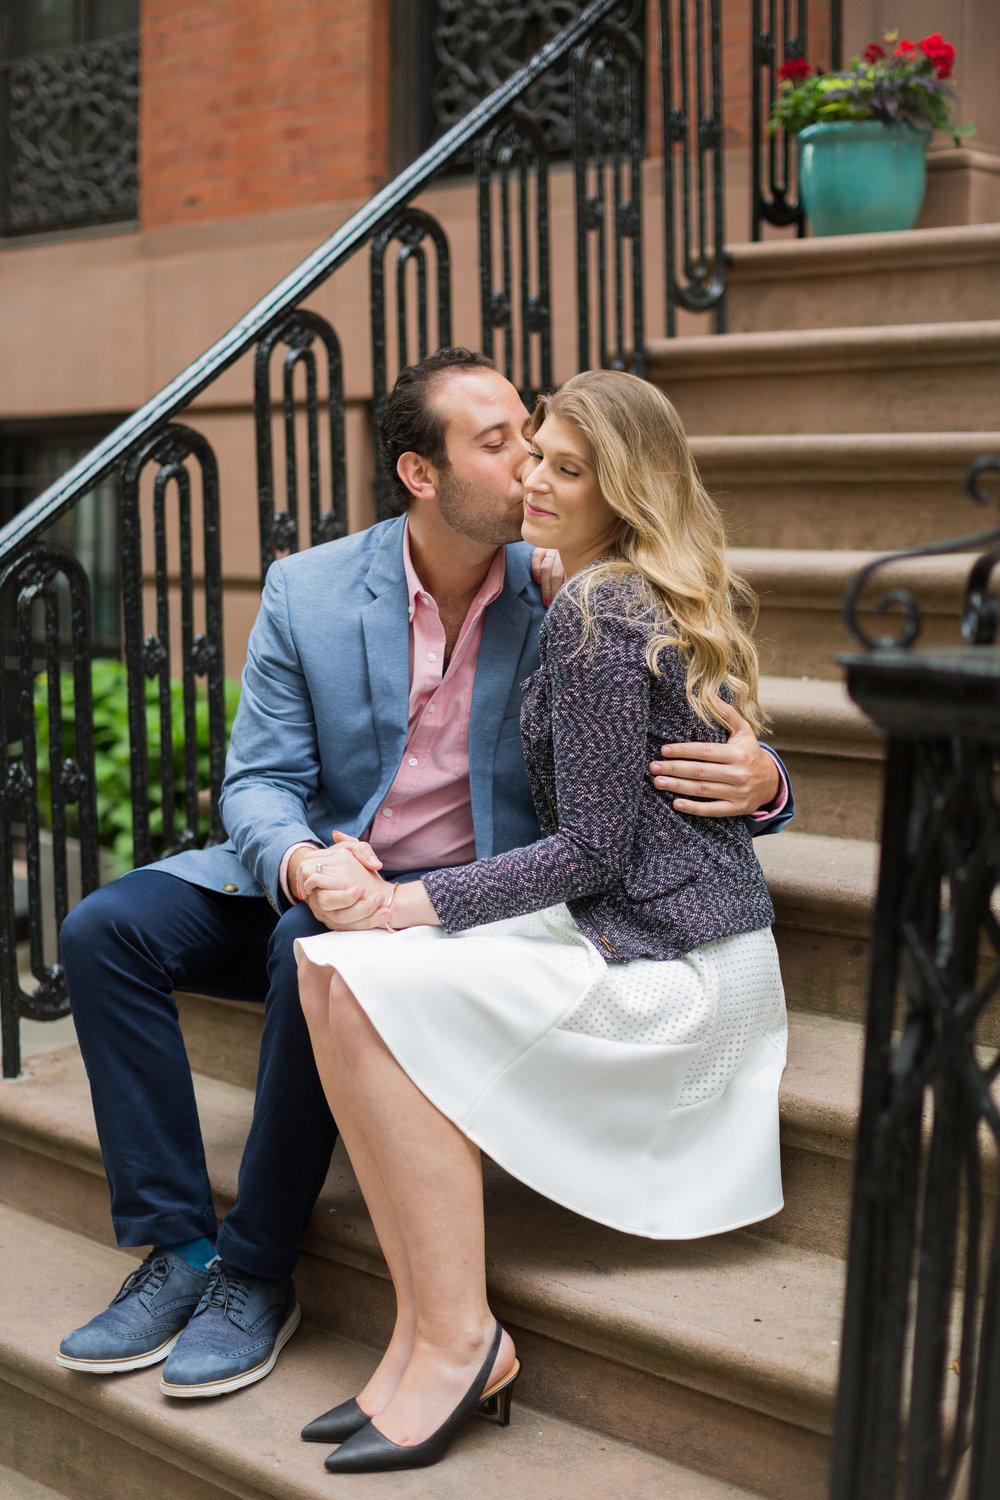 Melissa Kruse Photography - Courtney & JP Gramercy NYC Engagement Photos-110.jpg